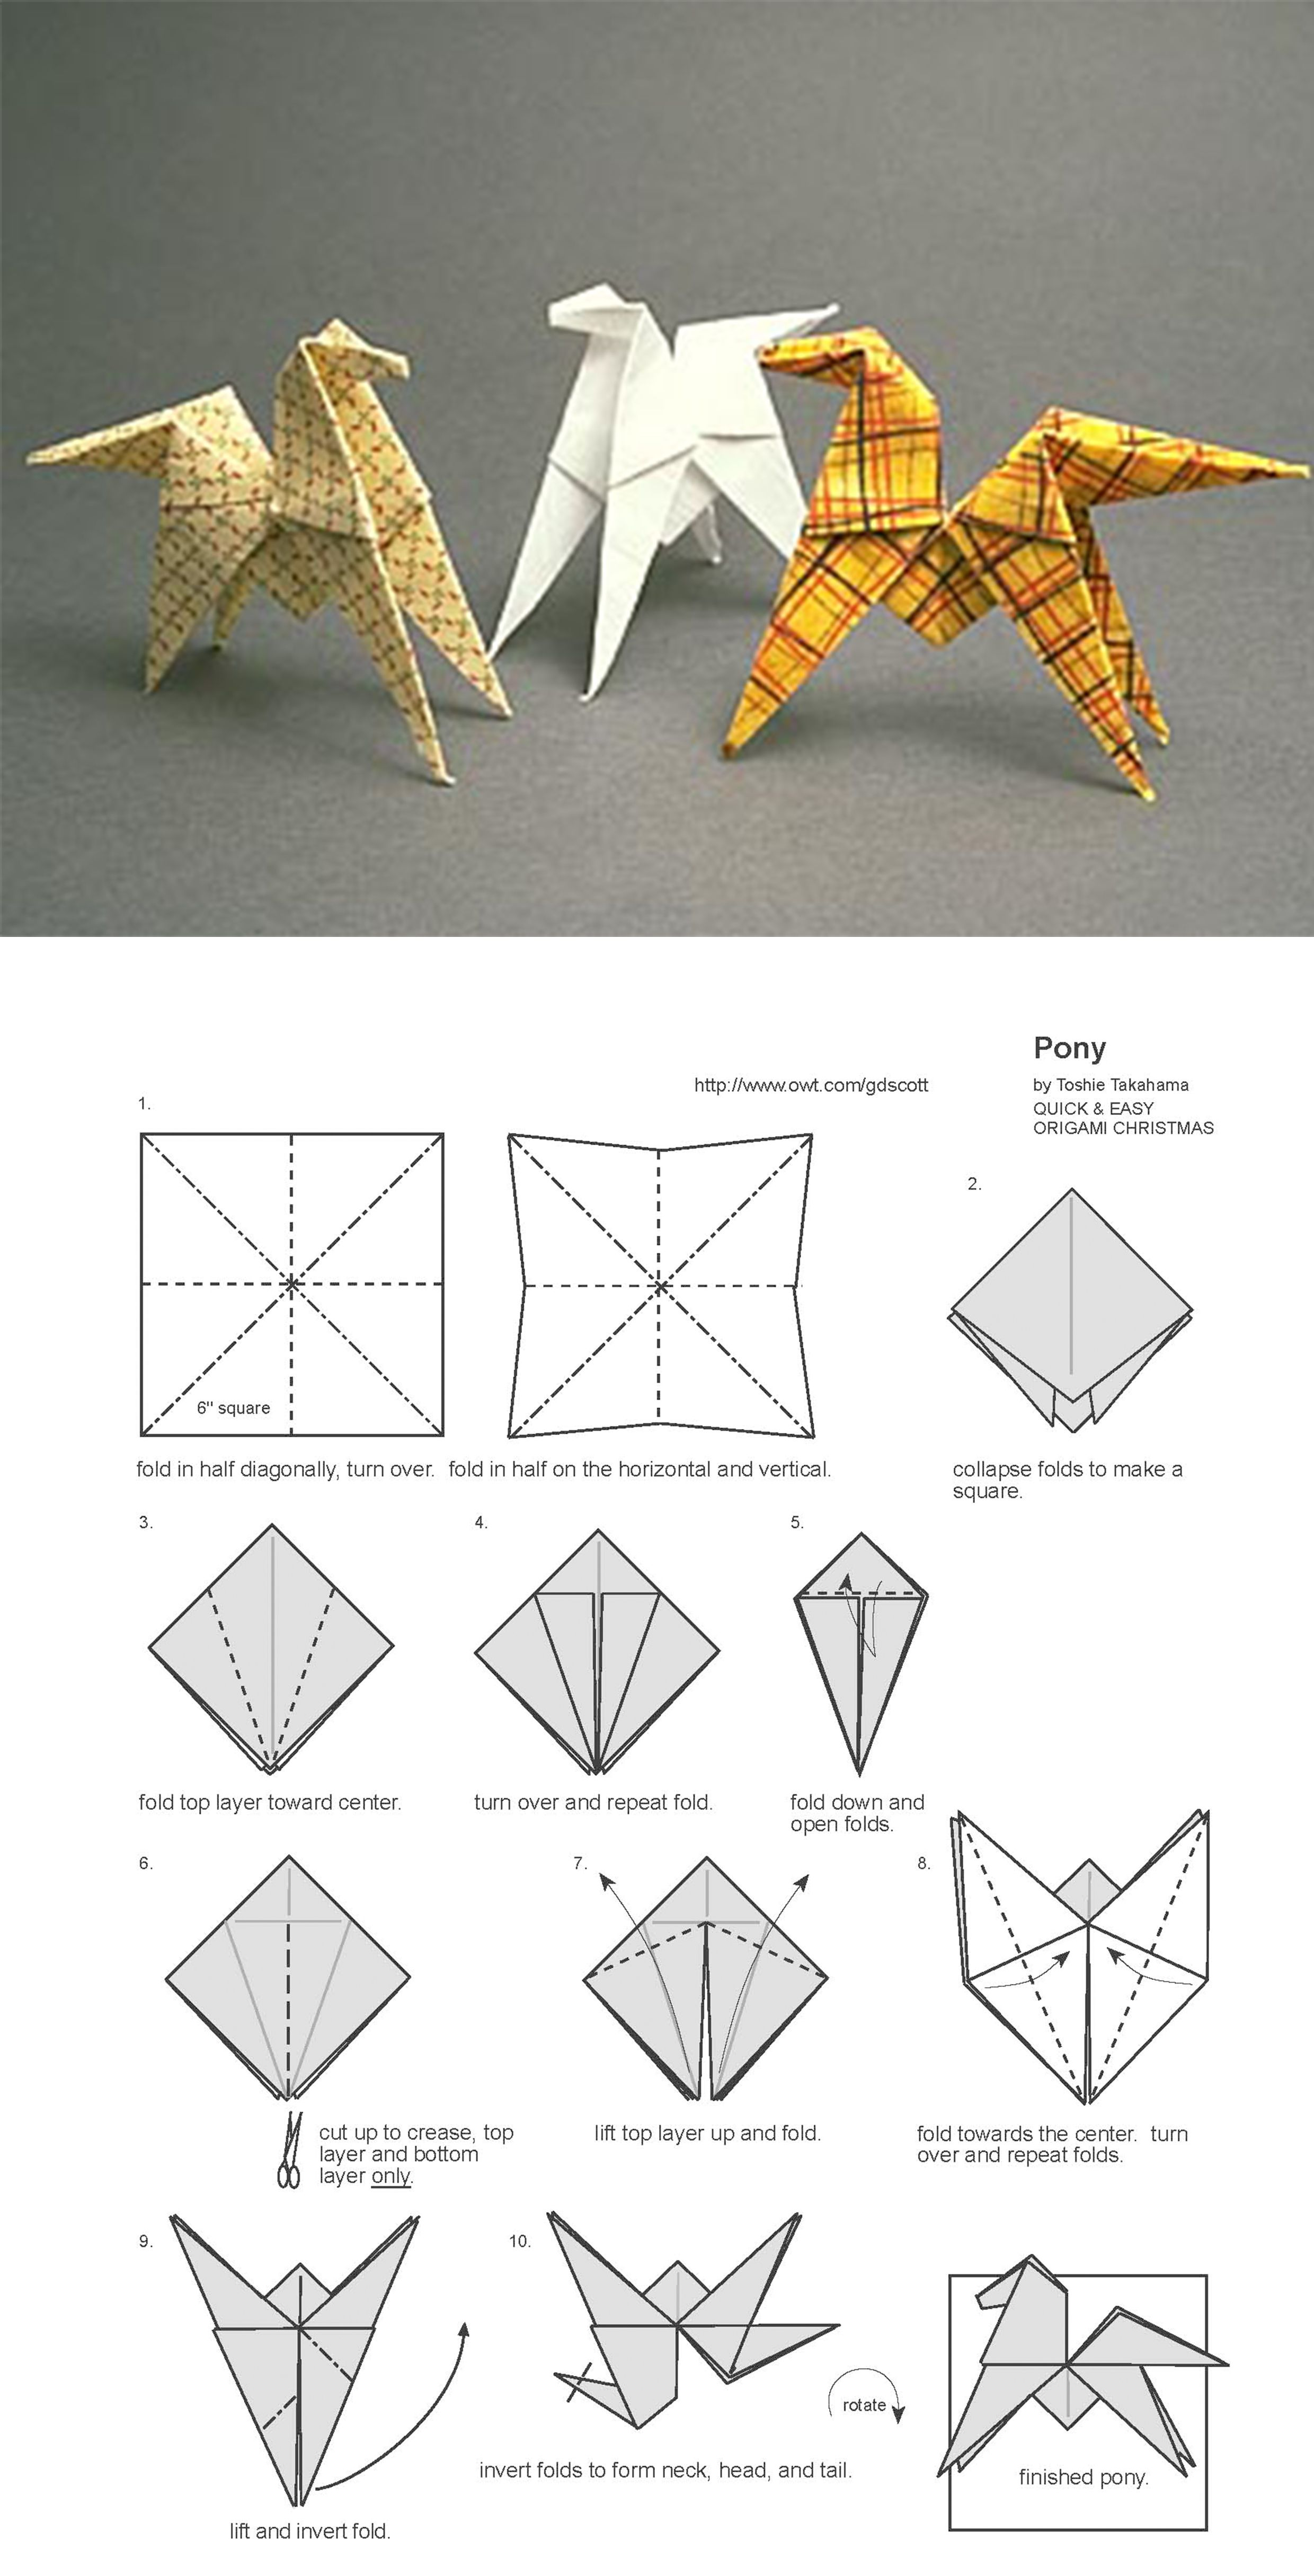 origami pferd horse at paper 3d decoupage papercraft pinterest origami pferd. Black Bedroom Furniture Sets. Home Design Ideas